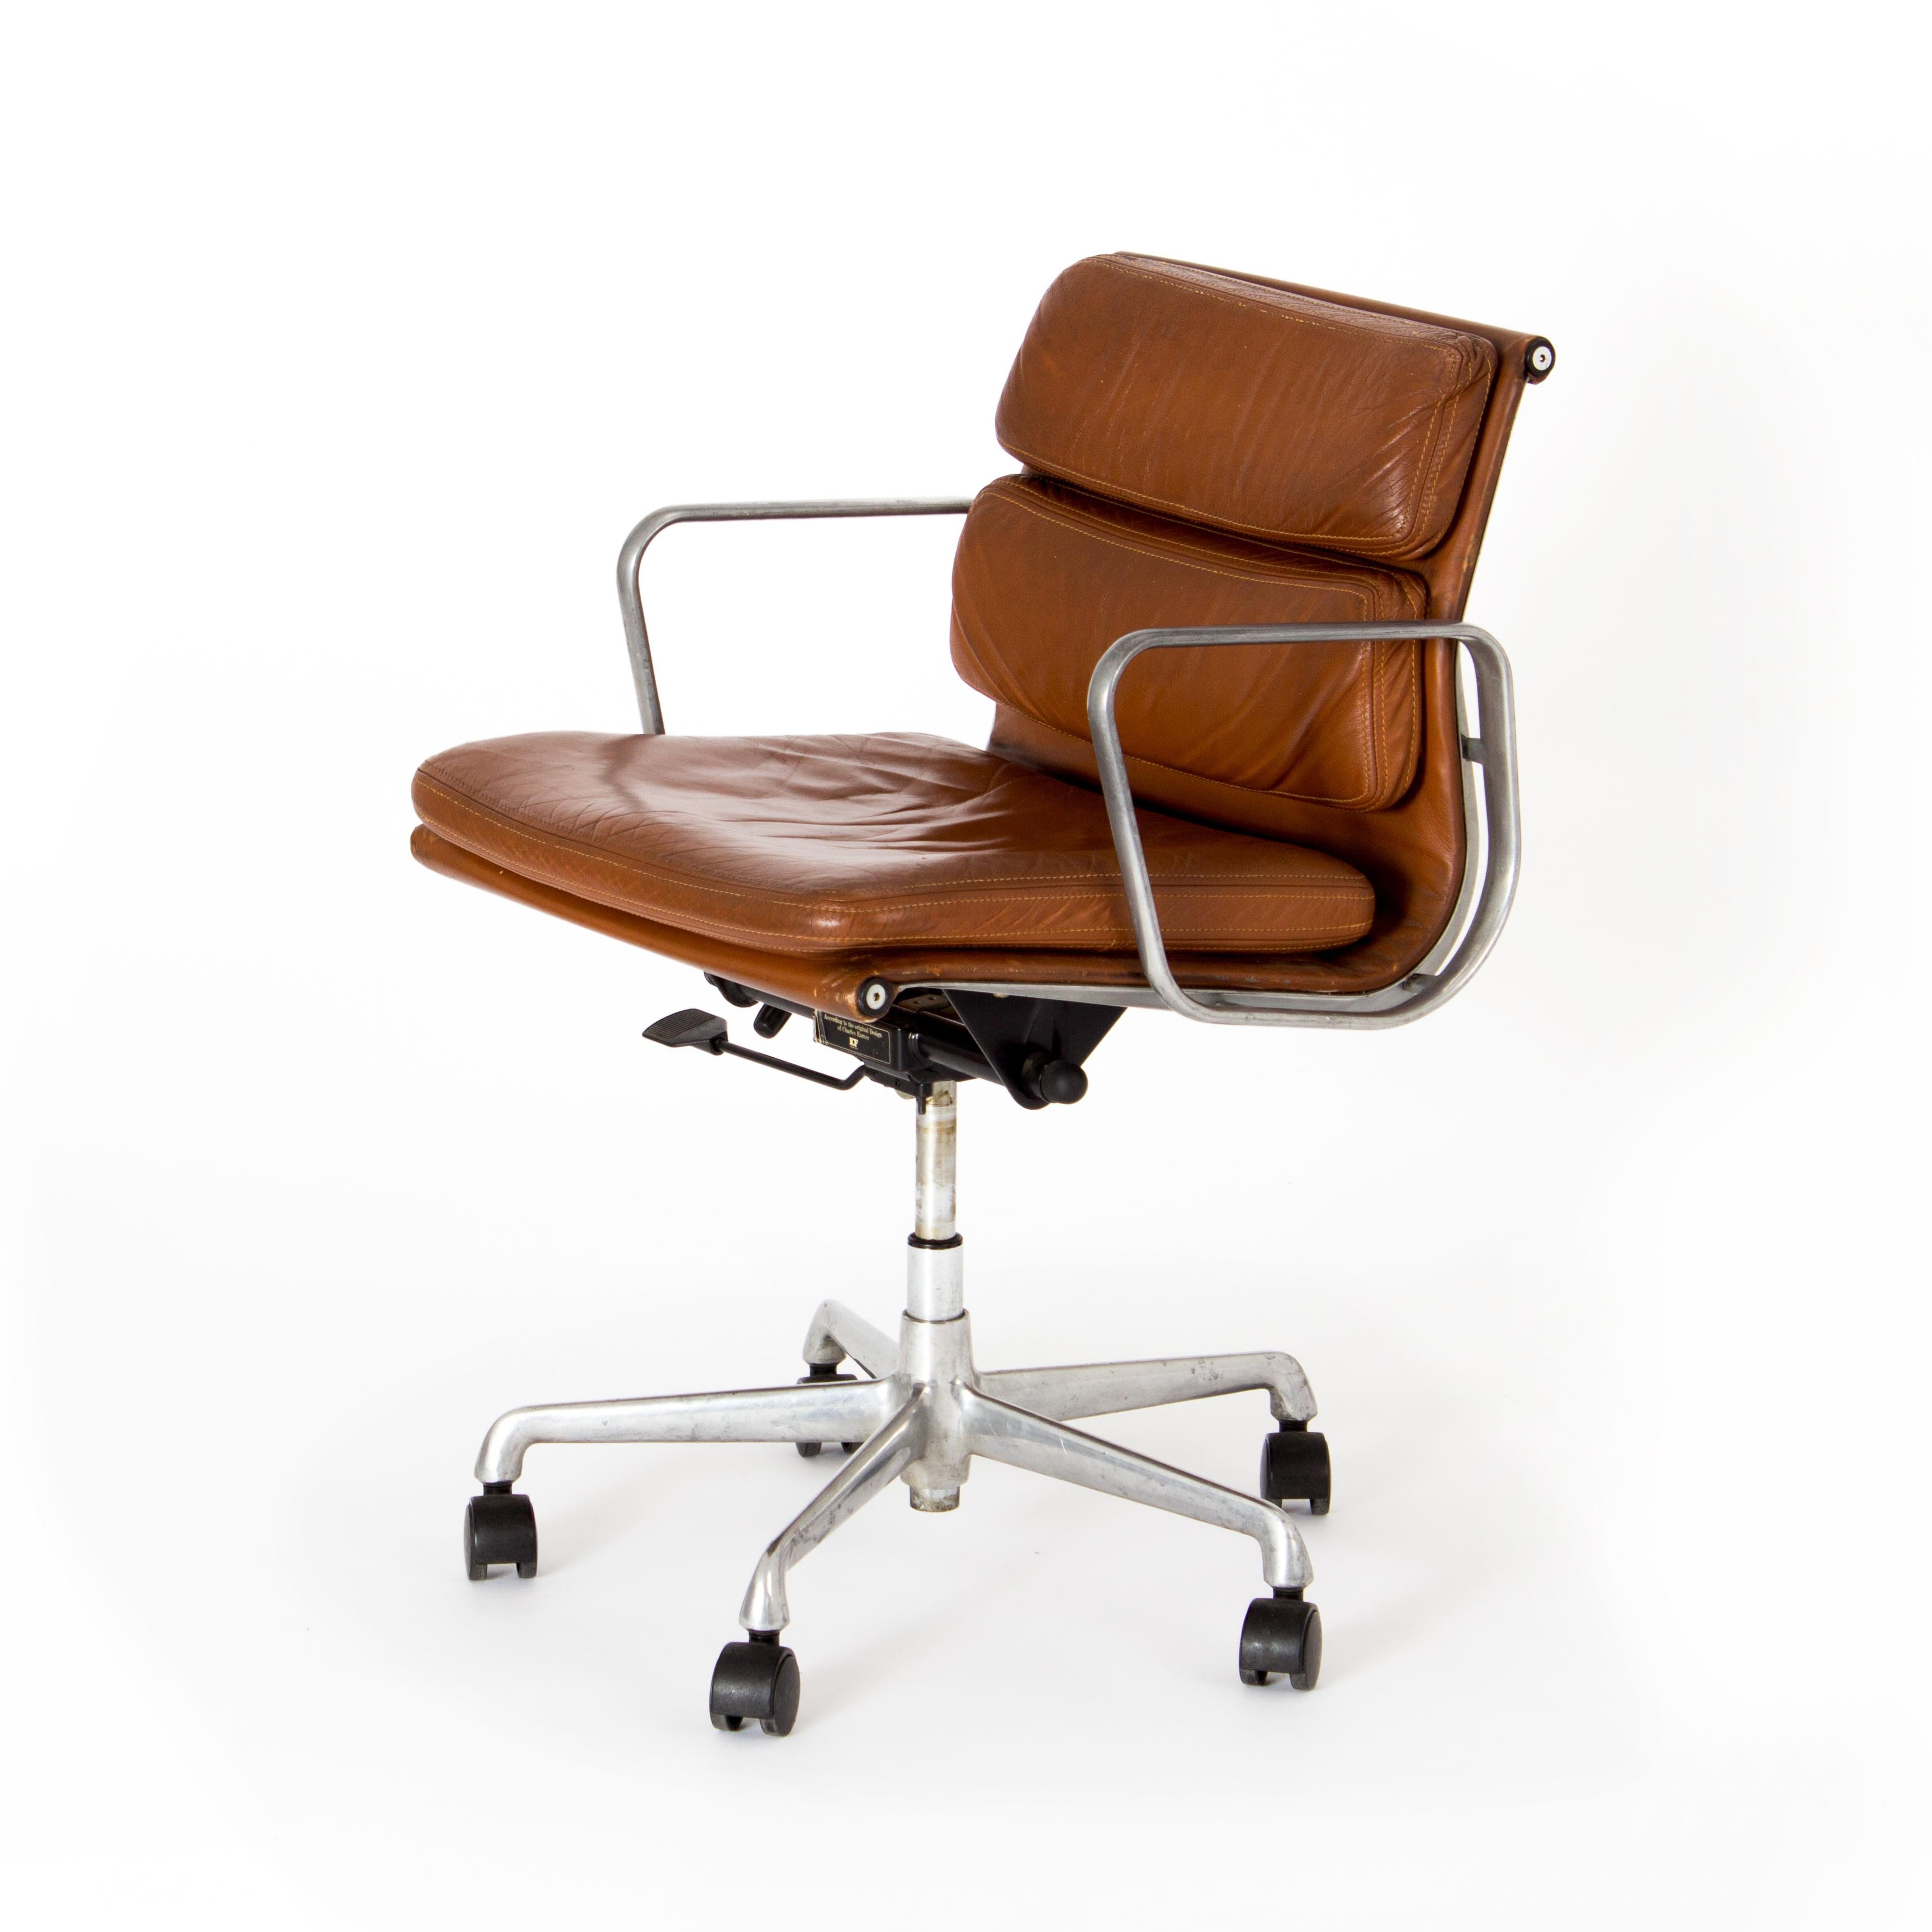 Charles Amp Ray Eames Soft Pad Chair In Cognac Leather By